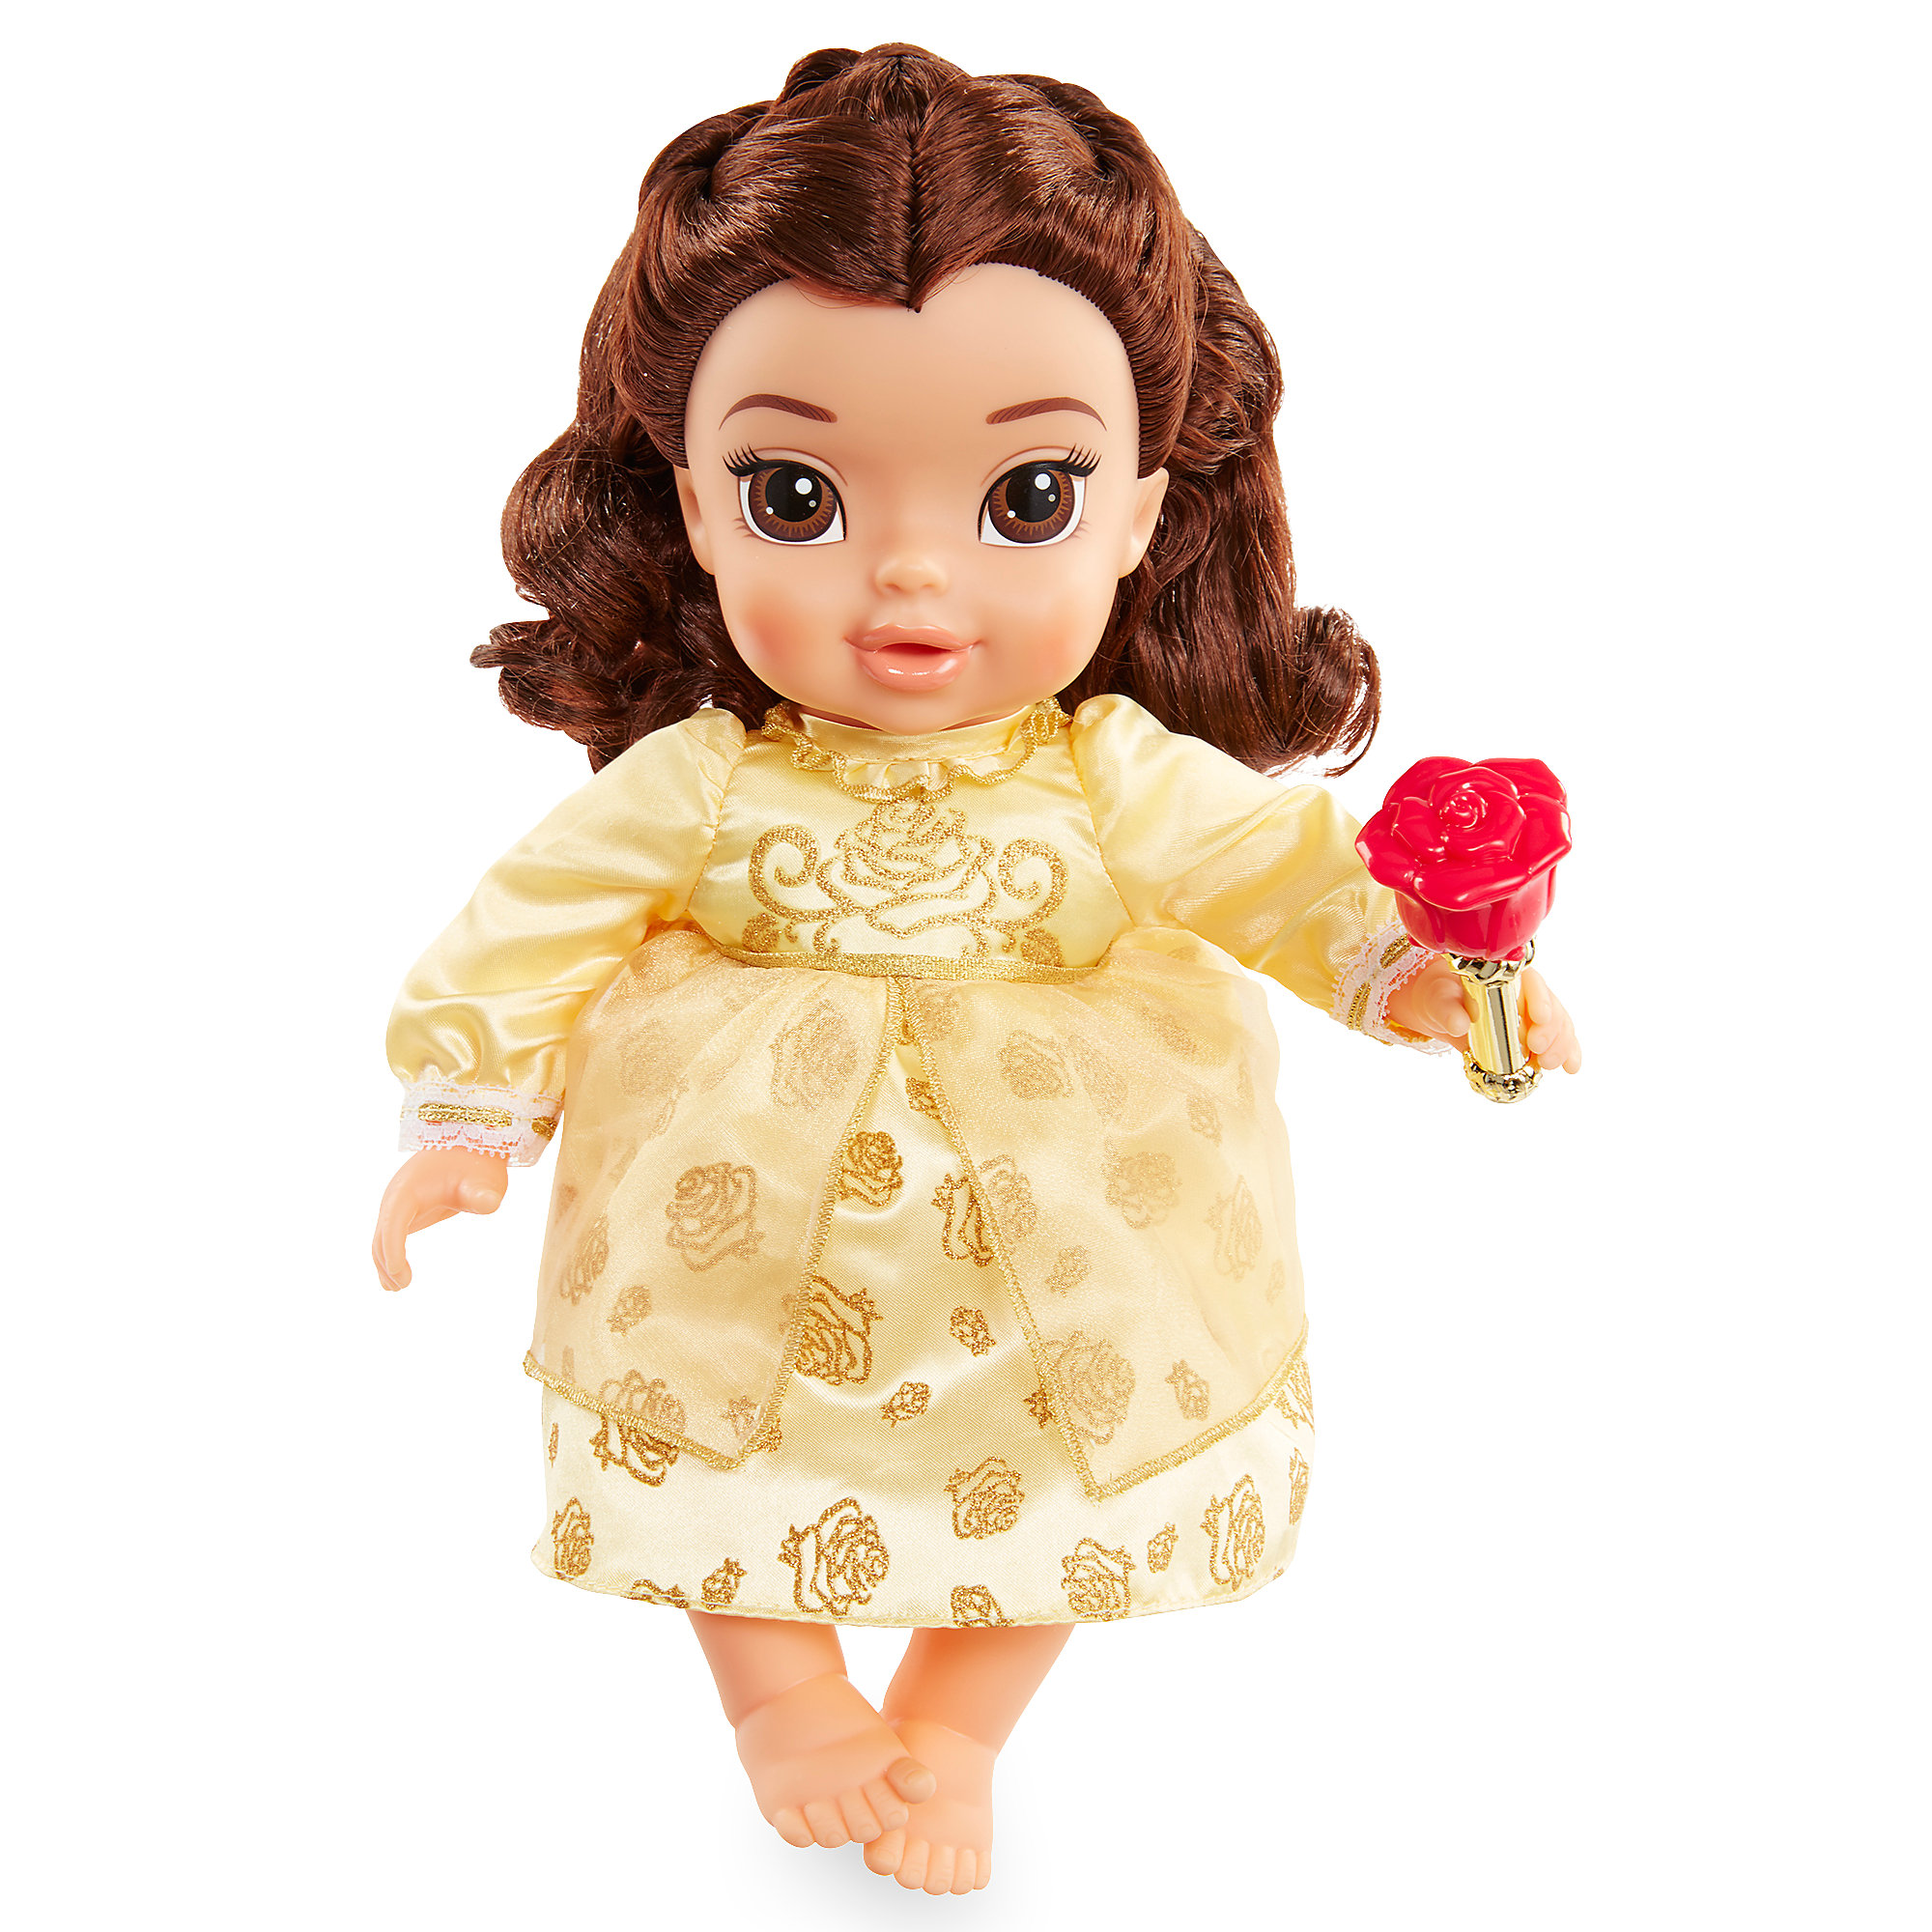 Belle Baby Doll - Beauty and the Beast - Live Action Film